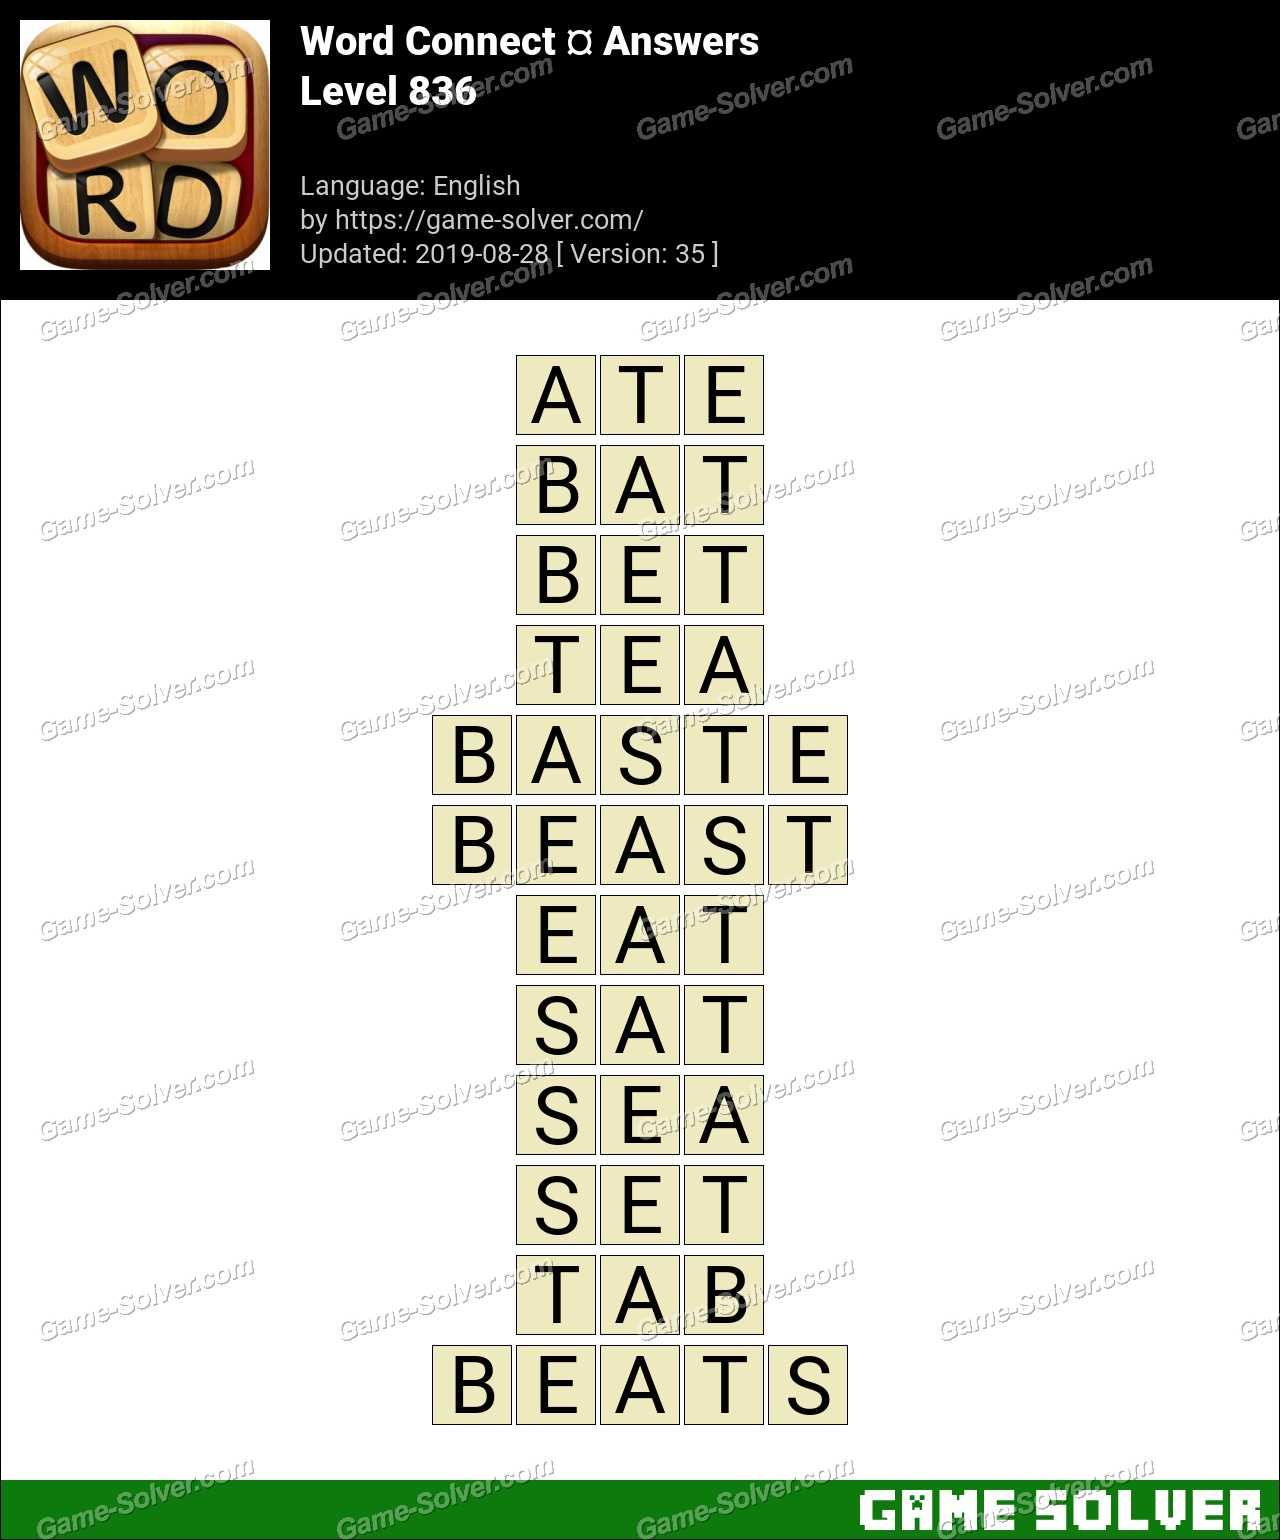 Word Connect Level 836 Answers